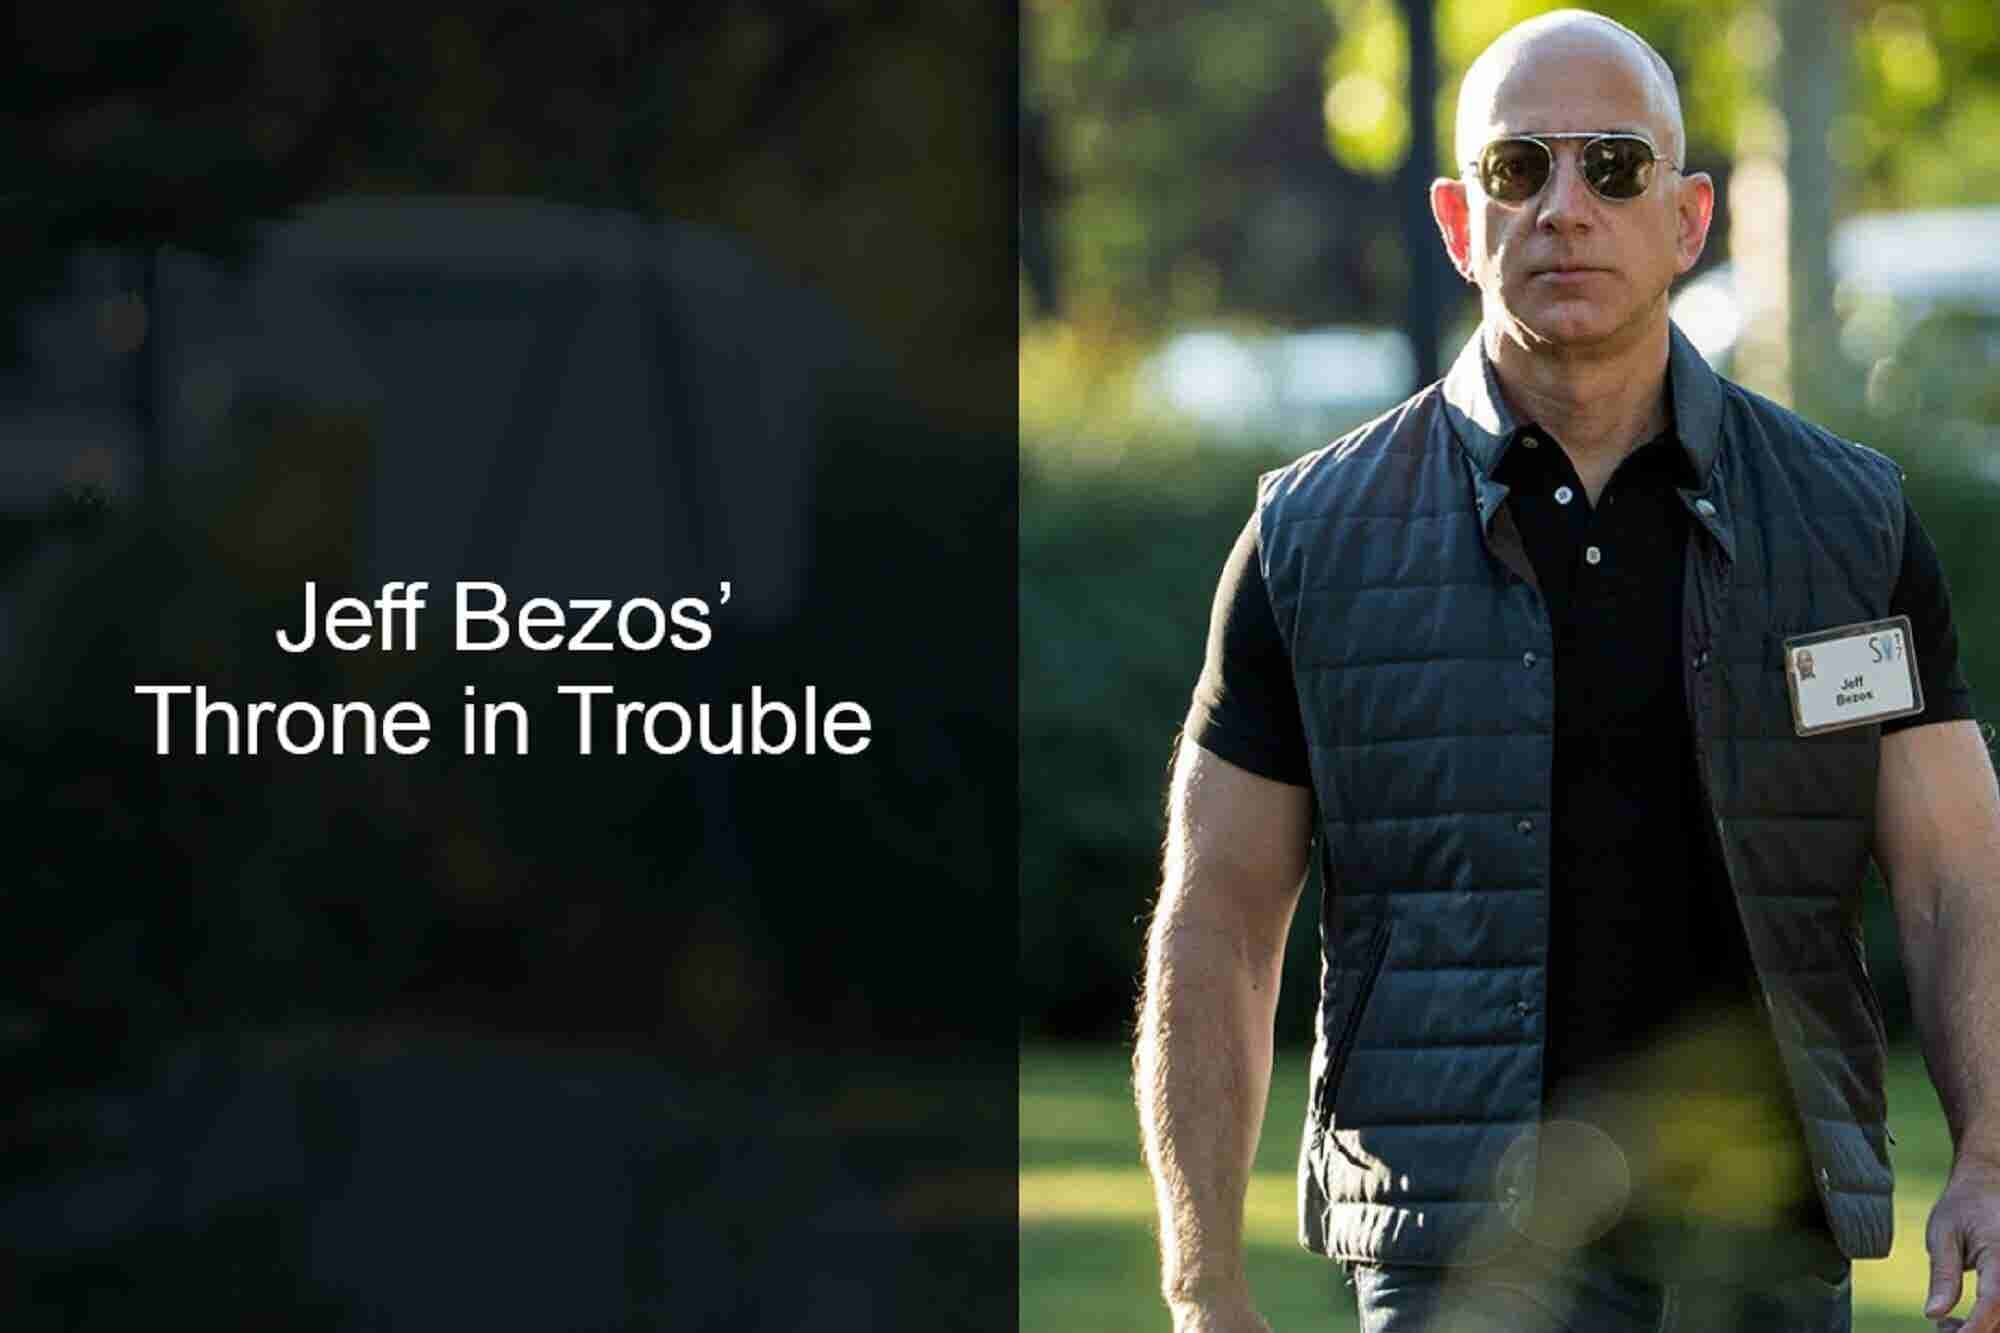 Beyond India: Jeff Bezos' Throne in Trouble & Mark Zuckerberg Takes a Personal Challenge